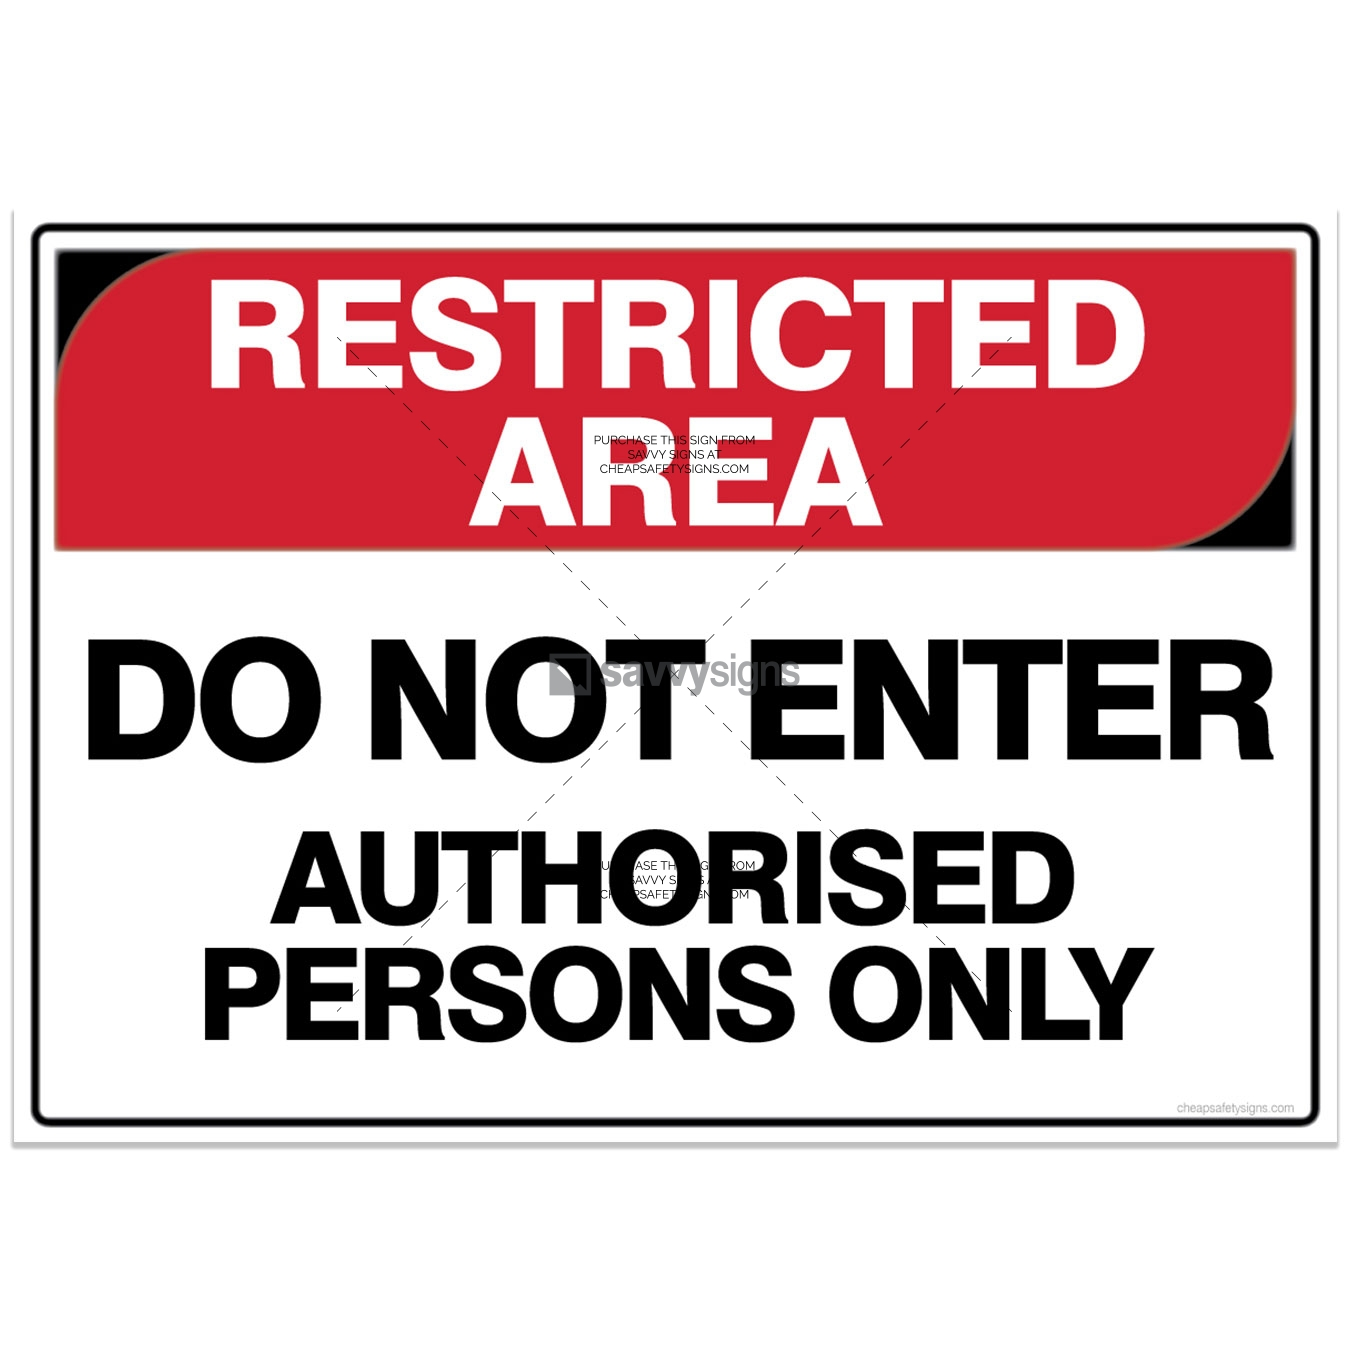 SSRES3014-RESTRICTED-AREA-Workplace-Safety-Signs_Savvy-Signs_v2